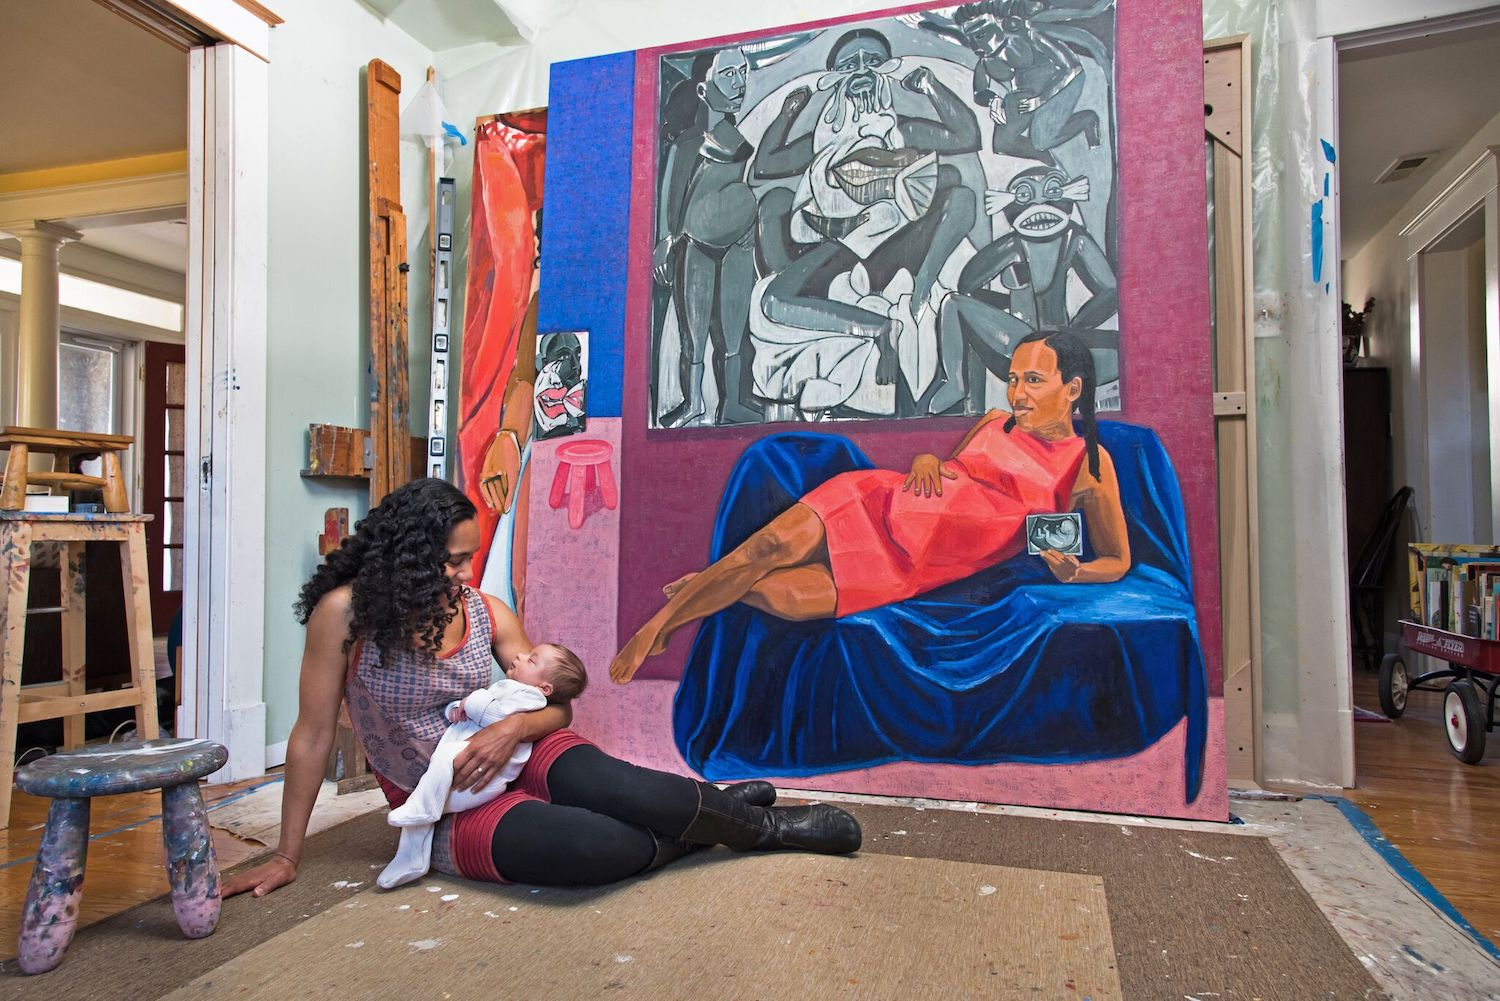 Connective Tissue: Mequitta Ahuja's Paintings Destabilize